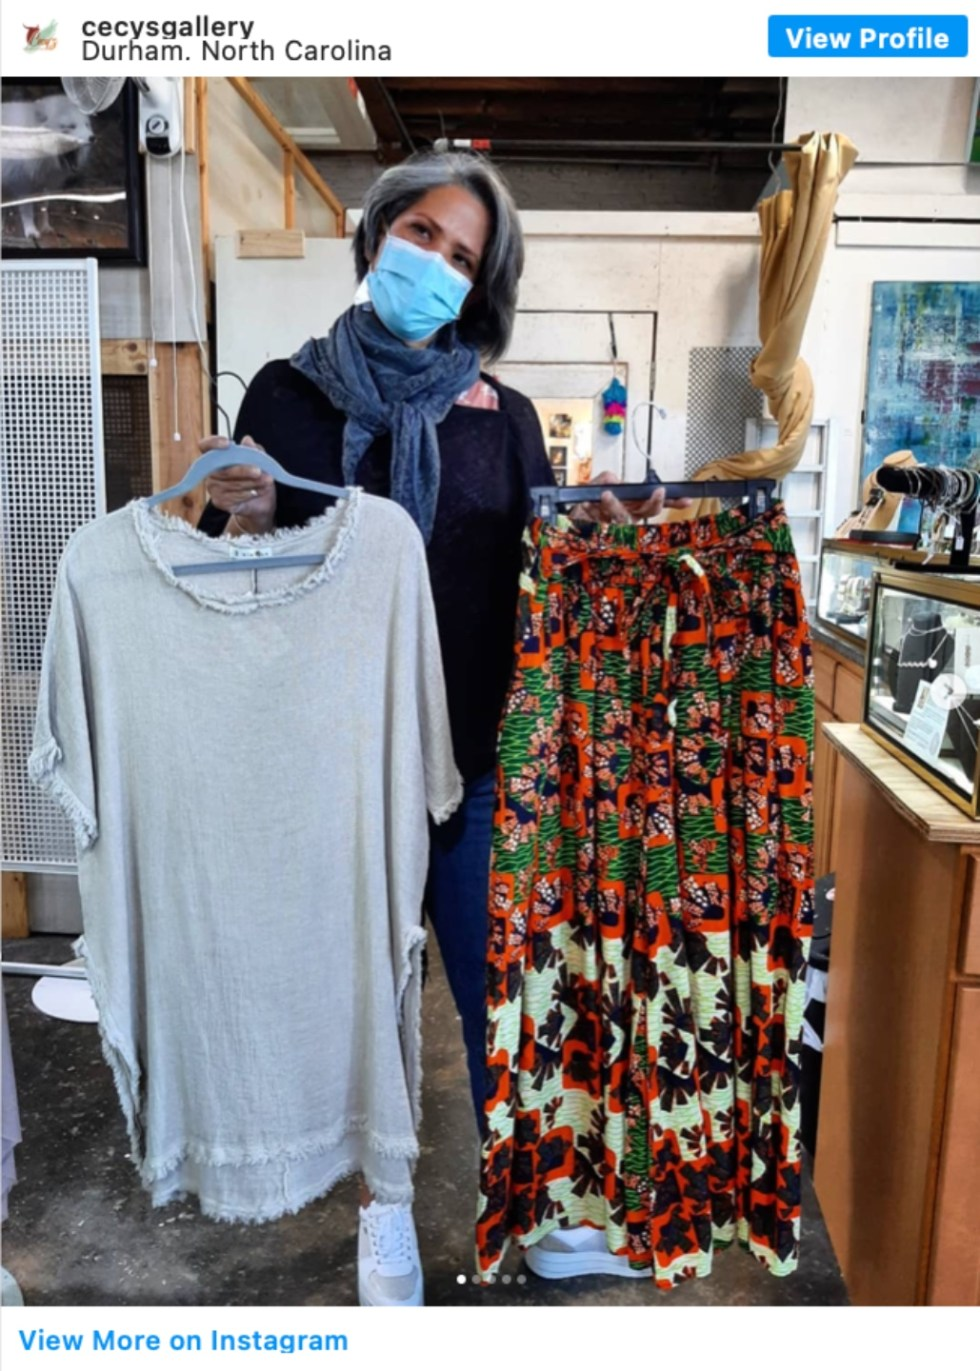 Durham Shopping: Top 11 Best Fashion Boutiques to visit After a Year of Quarantine - I'm Fixin' To - @imfixintoblog | Durham Shopping by popular NC lifestyle blog, I'm Fixin' To: image of a woman holding a frayed hem tunic and floral print midi skirt.